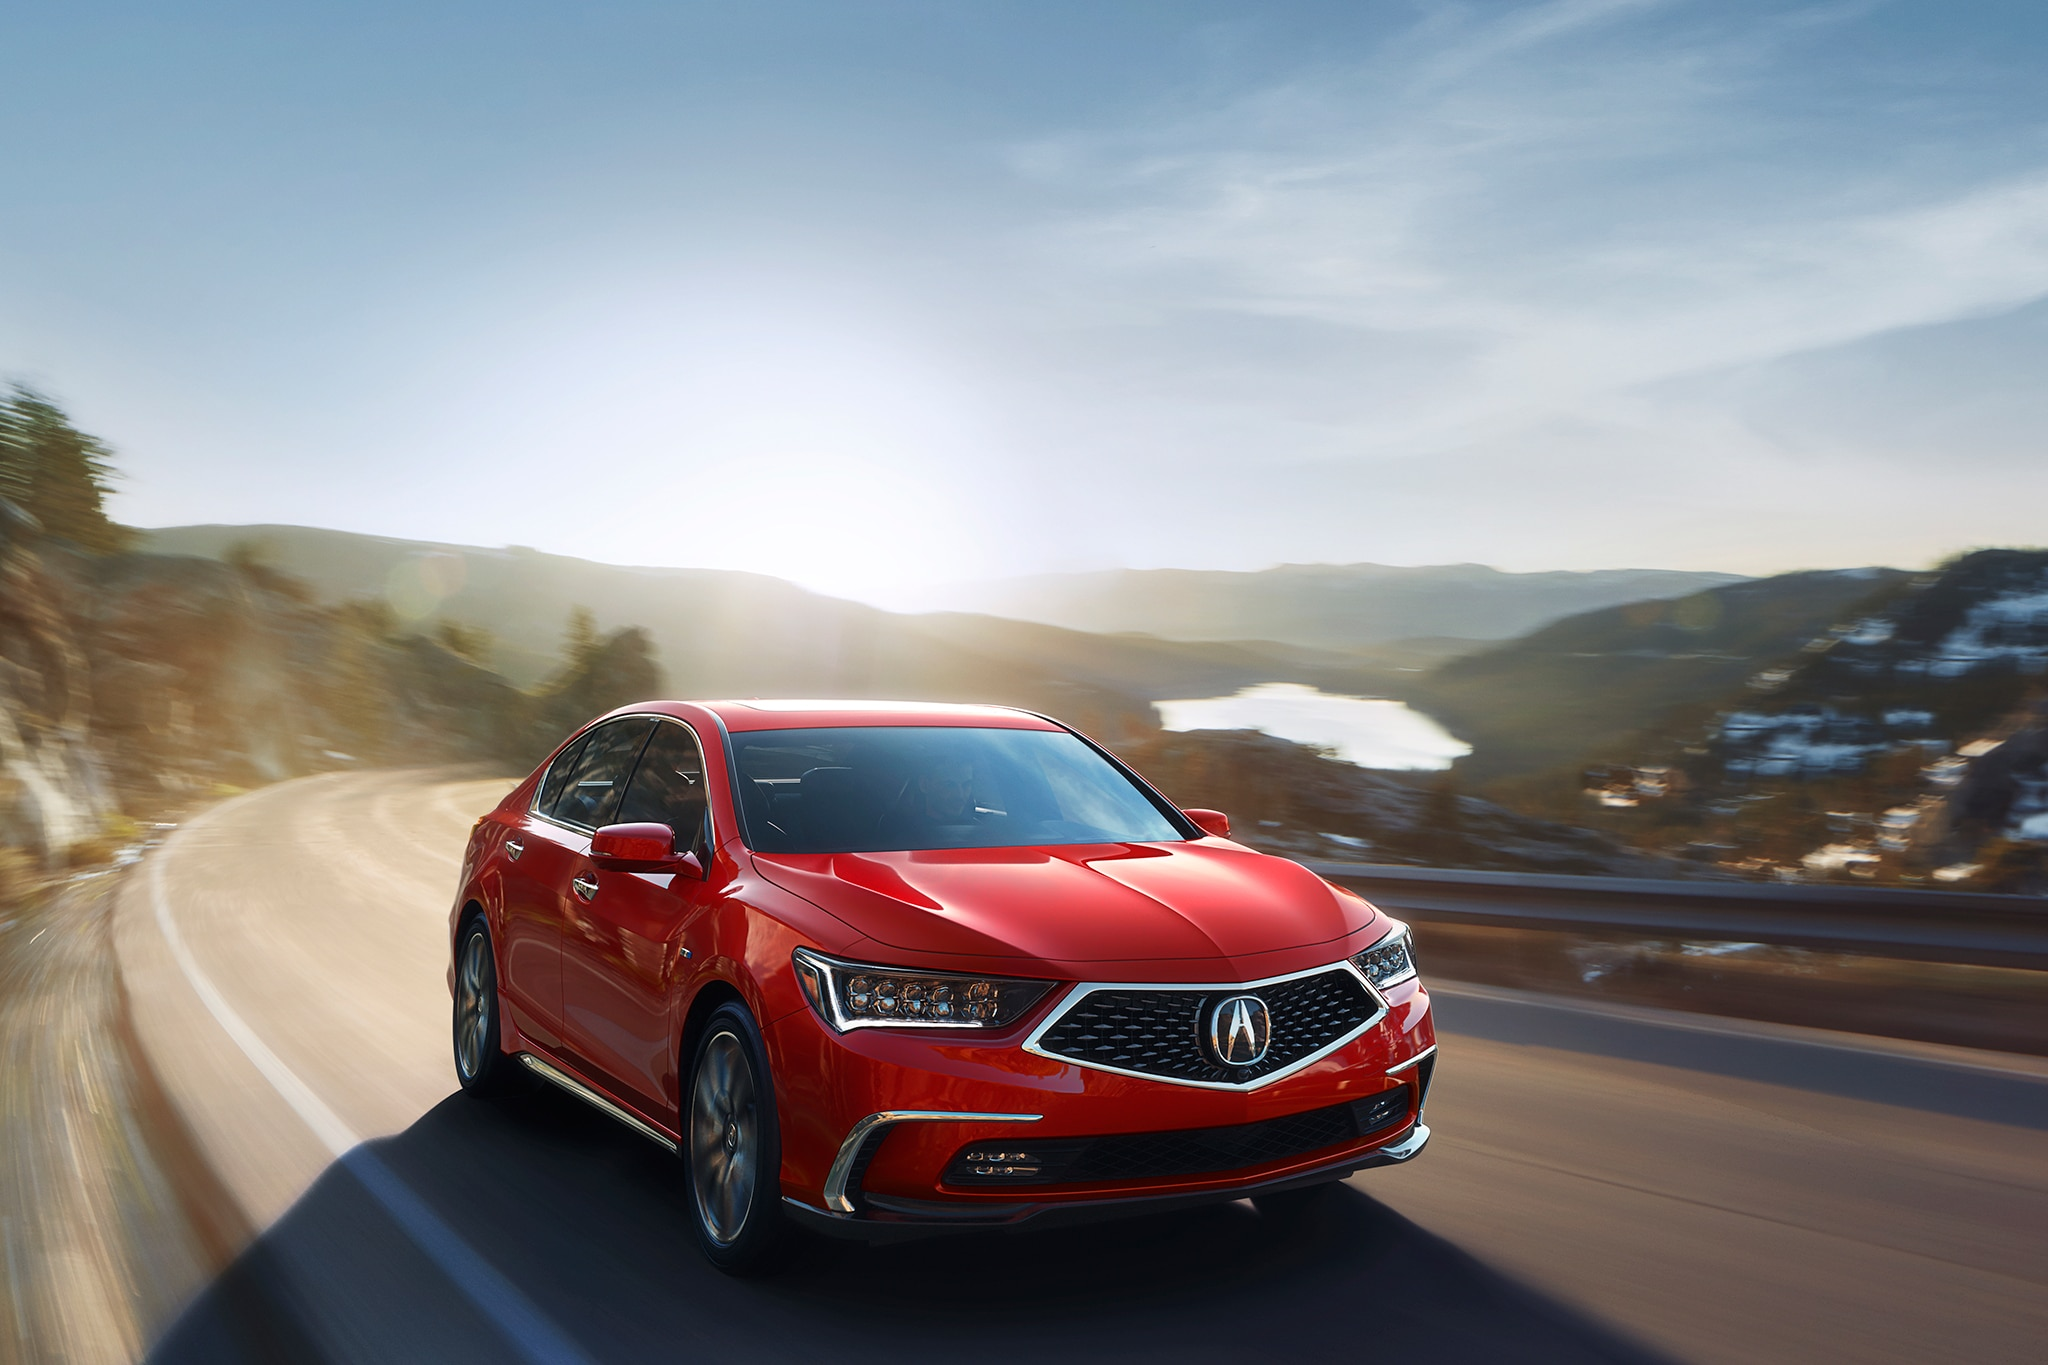 Acura RLX: Powering Ahead, Sans Beak